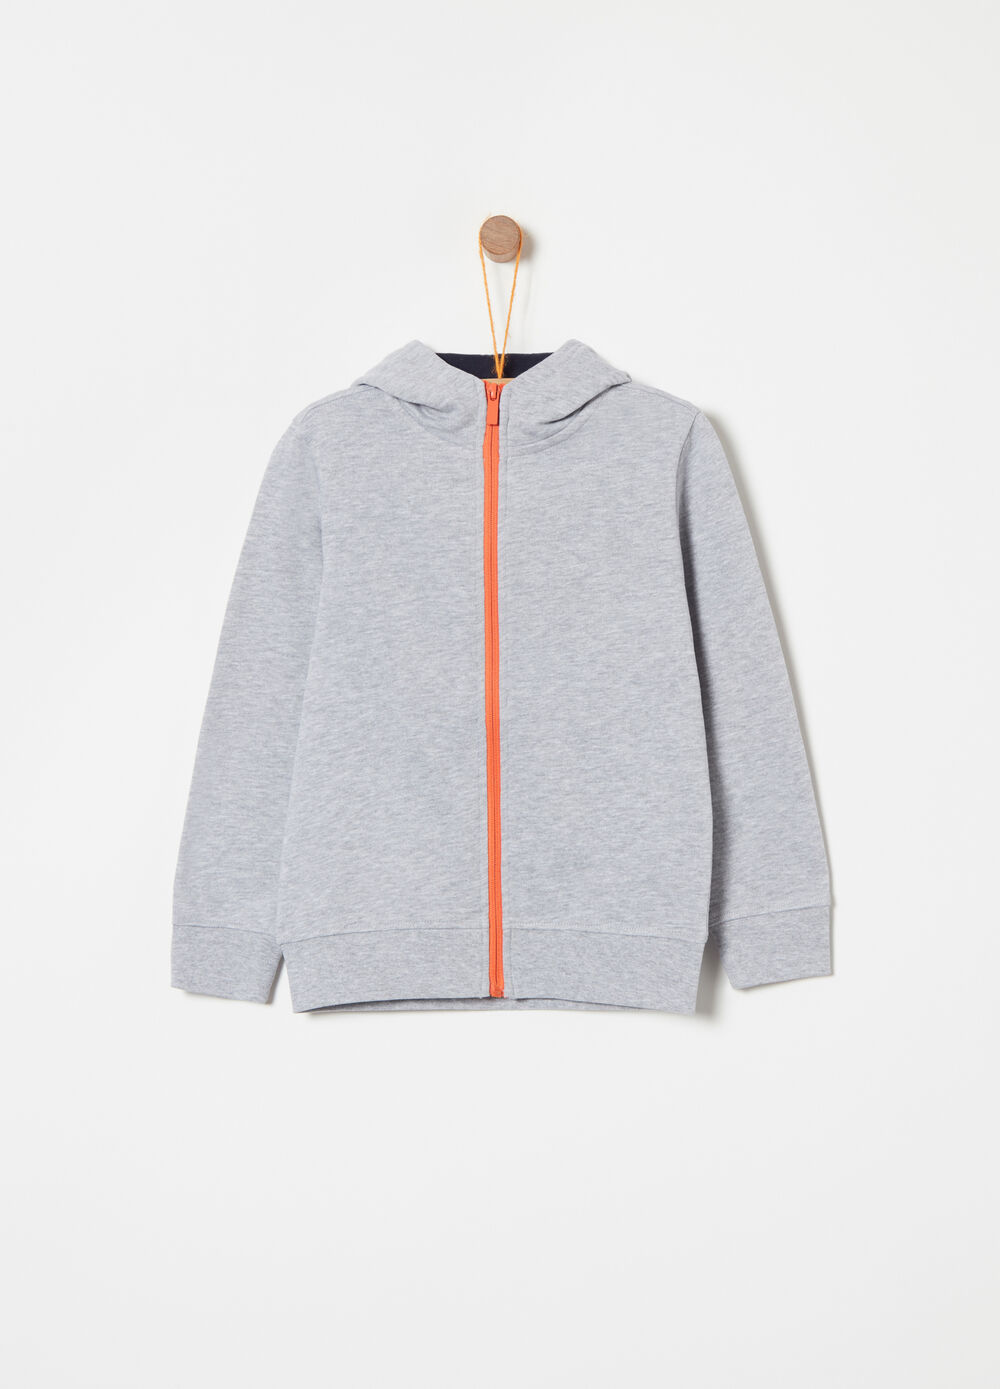 Full-zip heavy mélange sweatshirt with print on the back